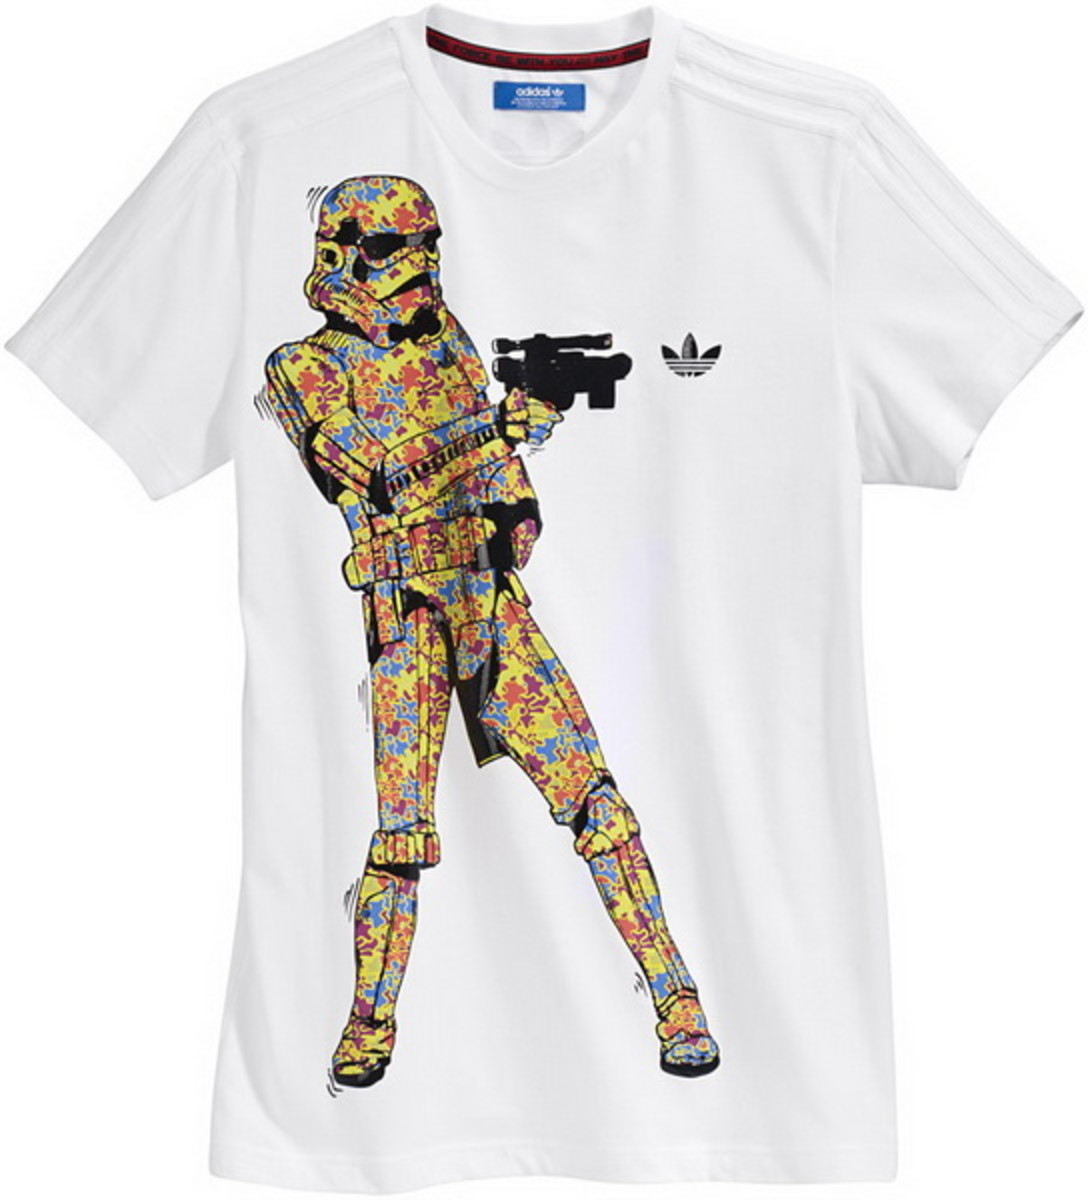 star-wars-adidas-originals-2011-apparel-15